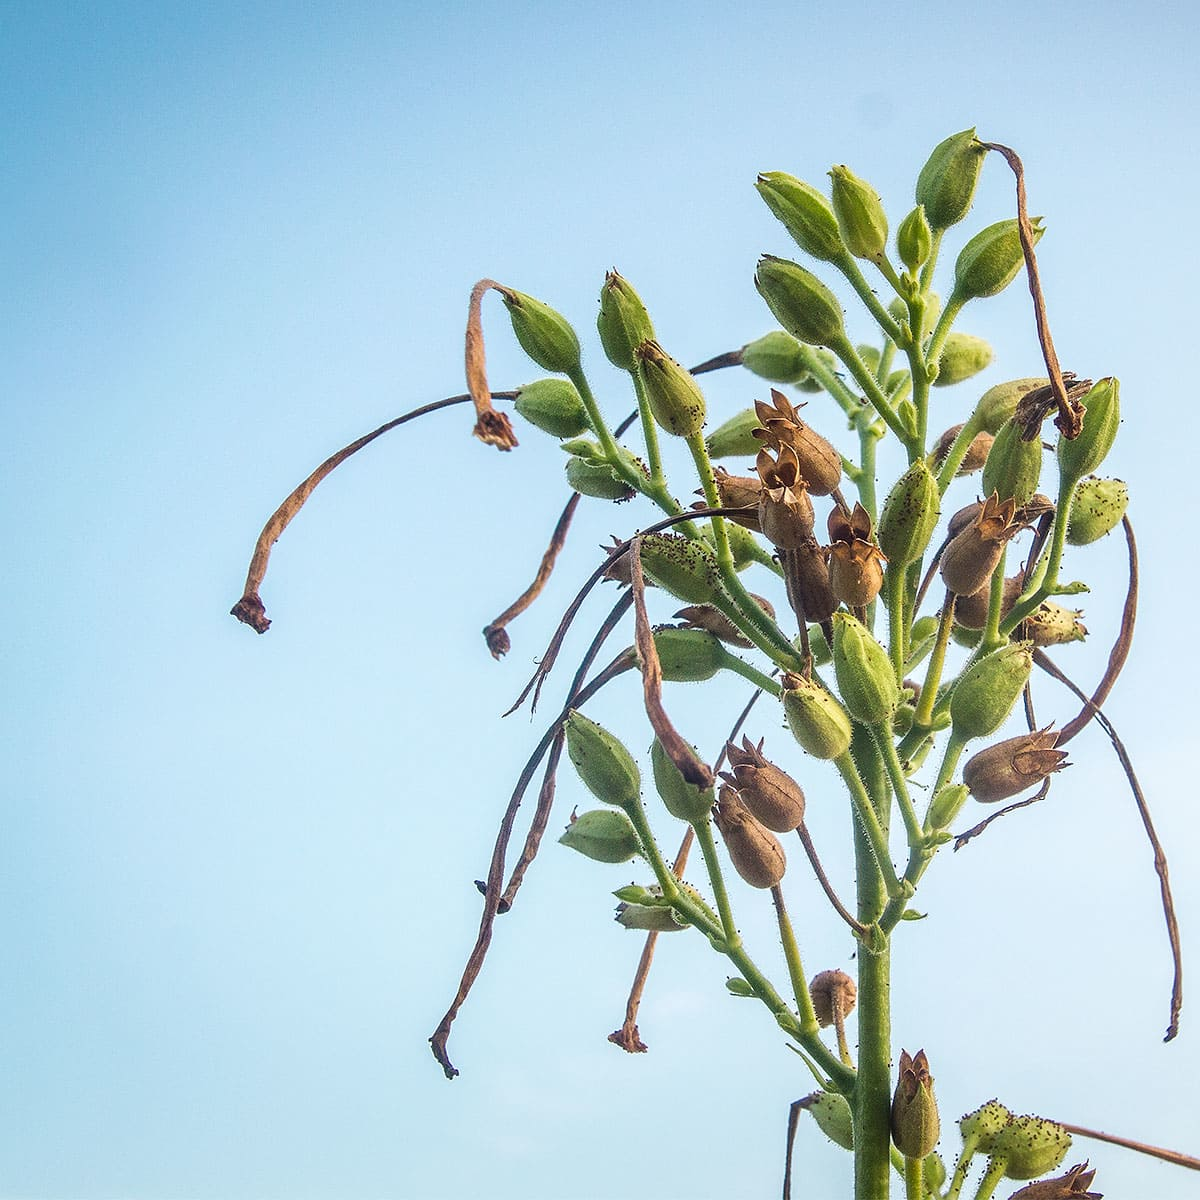 Photo of nicotiana seed pods